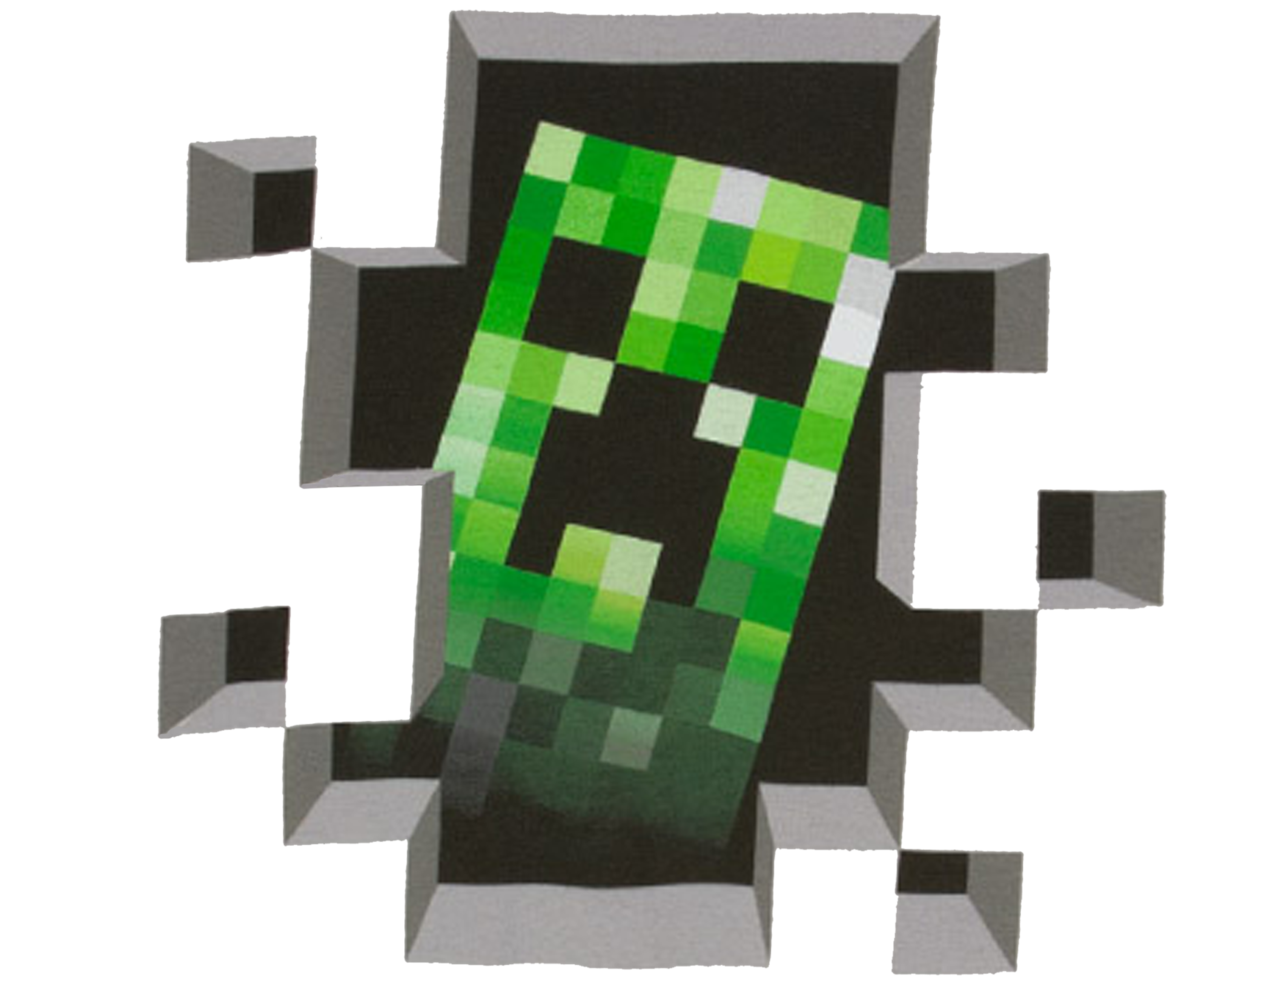 http://www.esourceengine.com/downloads/minecraft/creeper-tdesign.jpg